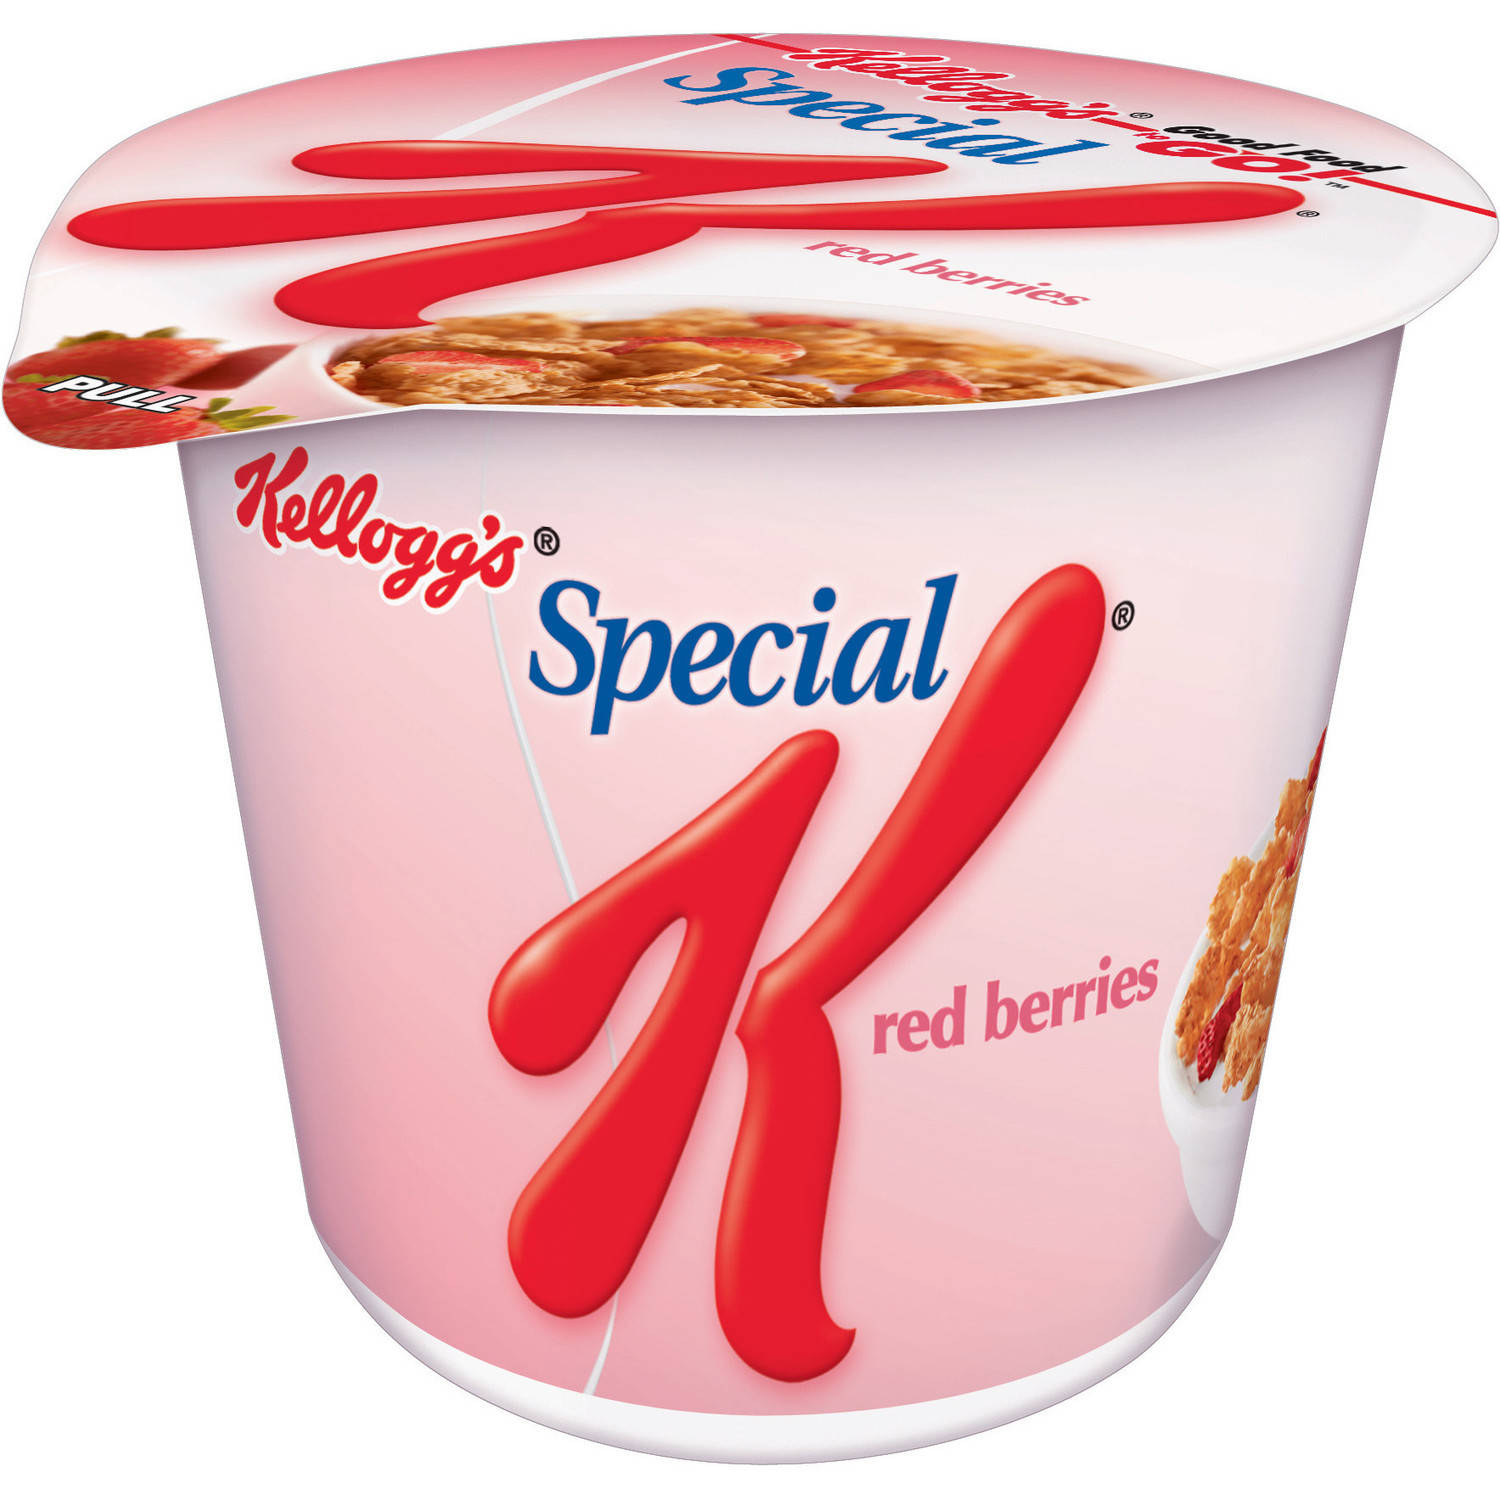 Kellogg's Special K Red Berries Cereal, 2.5 oz, 12 count